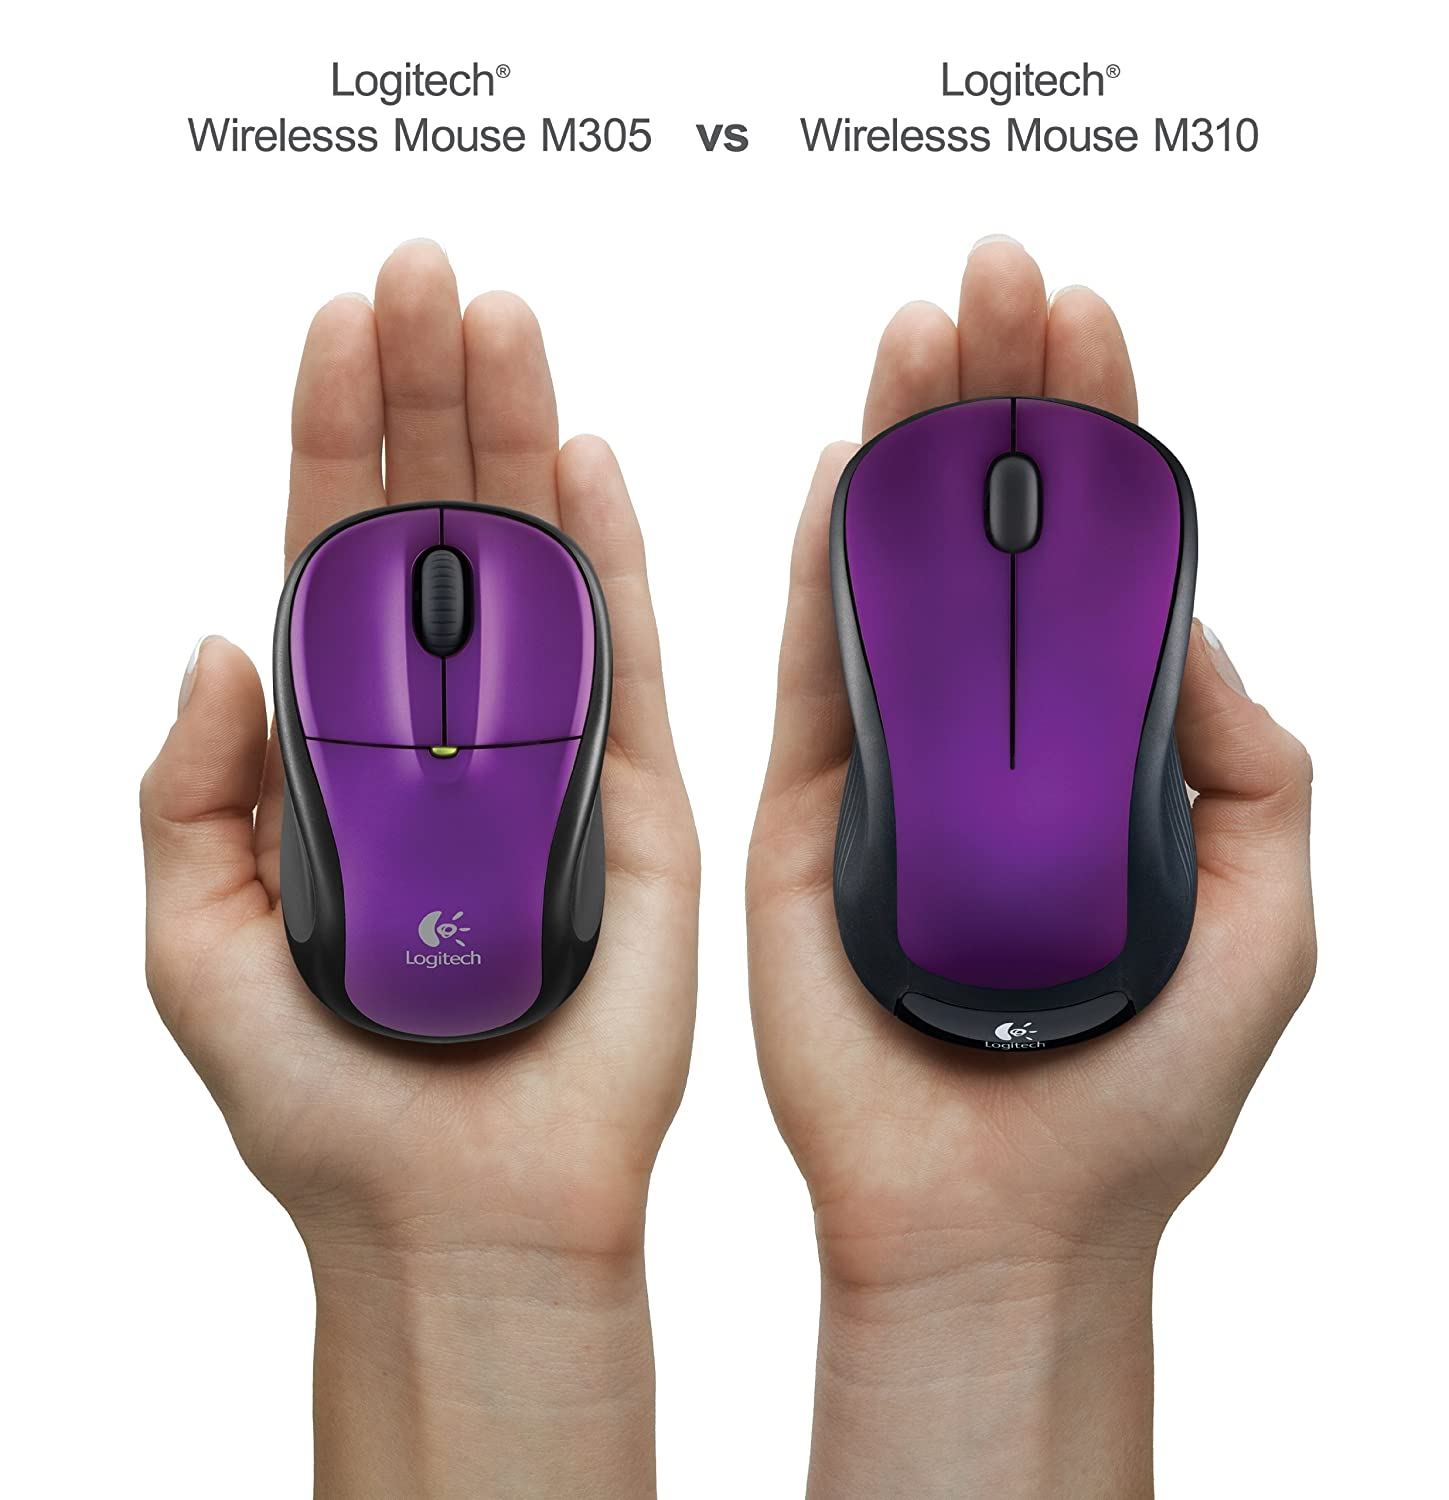 Logitech m305 wireless mouse review-very portable and comfortable.